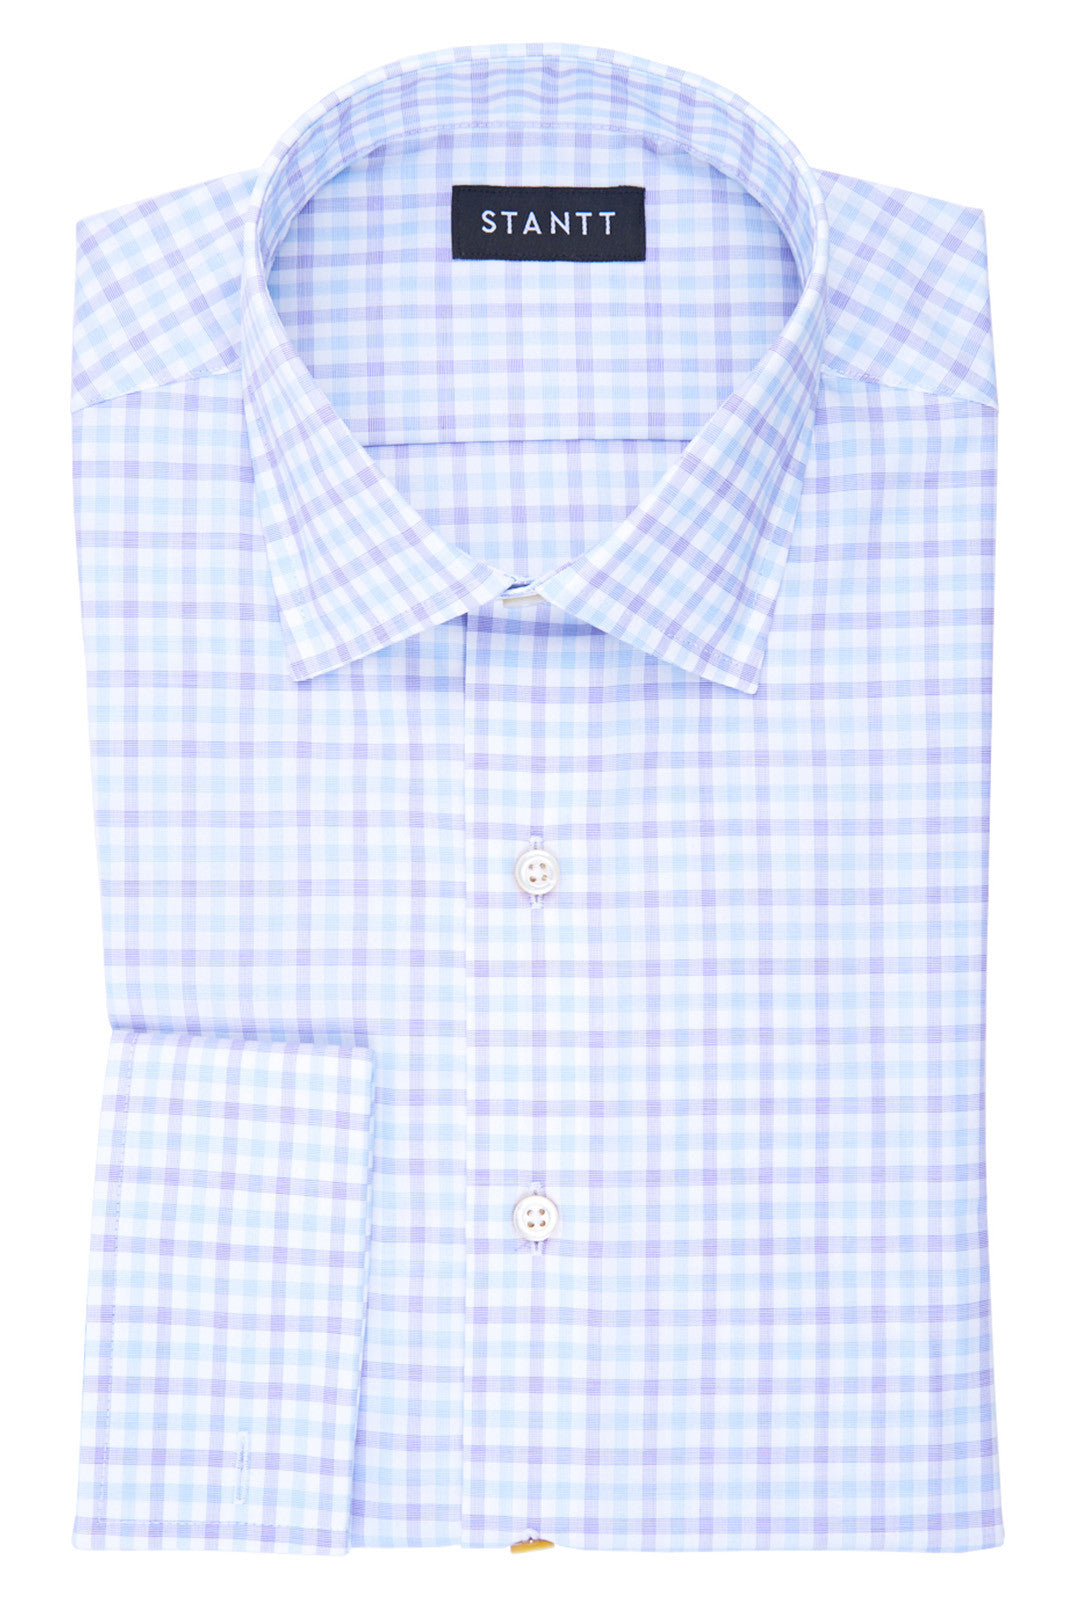 Wrinkle-Resistant Purple Cross Weave Tattersall: Modified-Spread Collar, French Cuff